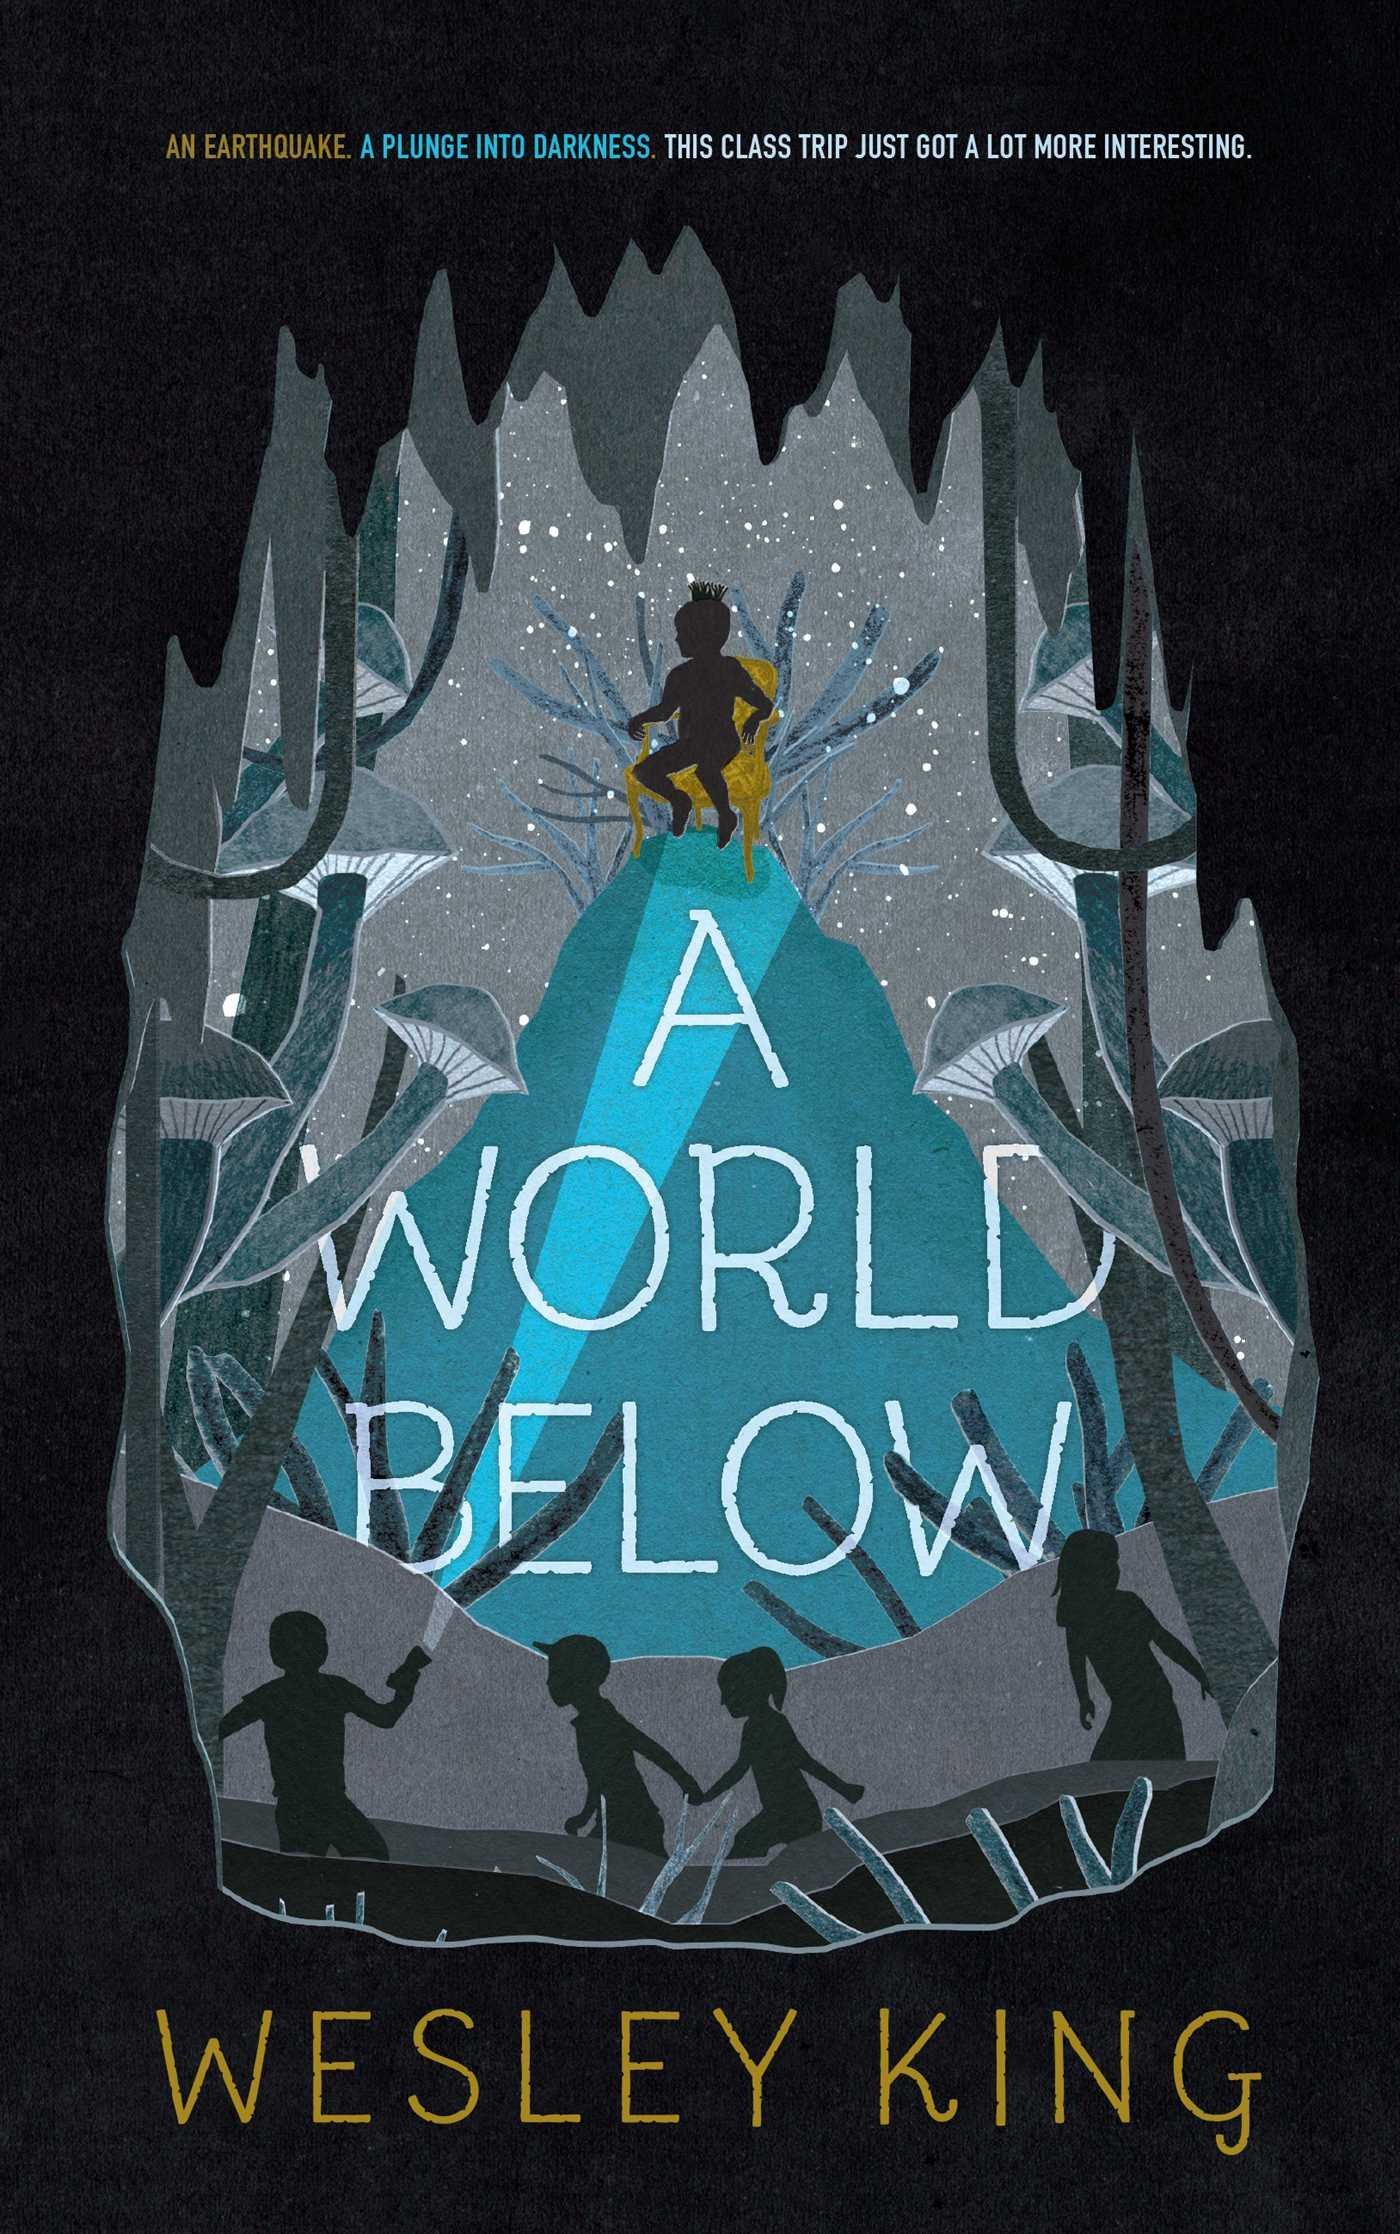 A World Below: Wesley King: 9781481478229: Amazon.com: Books